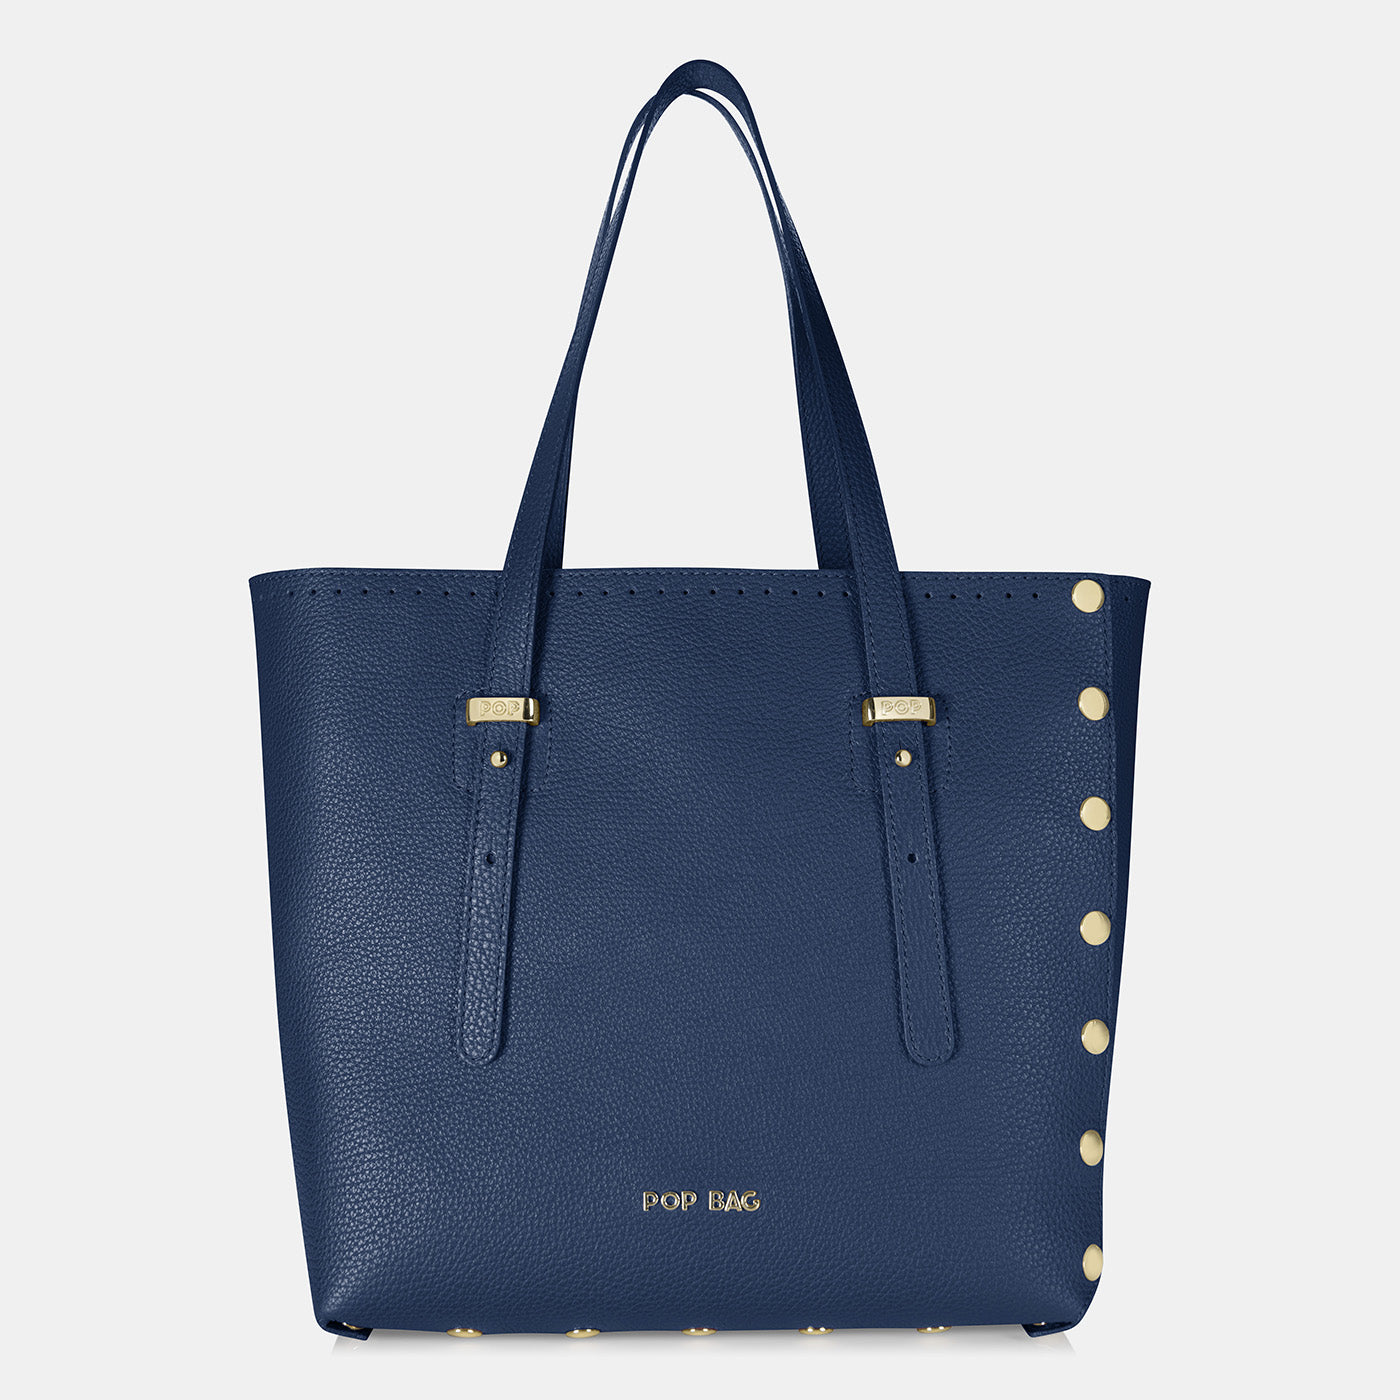 Pop Dolly Bag - Blue - Large